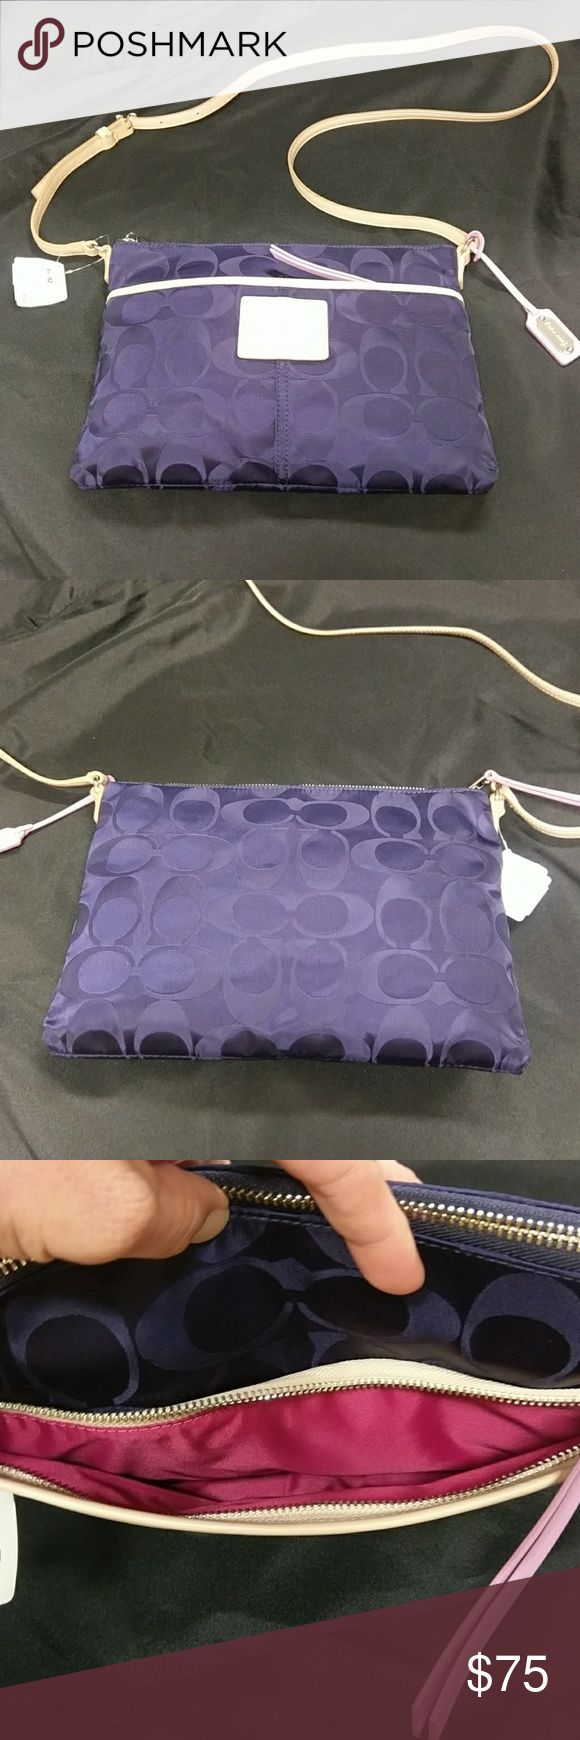 "Coach Legacy Weekend Signature Hippie NWT Coach Legacy Weekend Signature Hippie NWT Navy Nylon comes with dust bag. 11""L x 8""H x 1"" new never used perfect condition. Coach Bags"